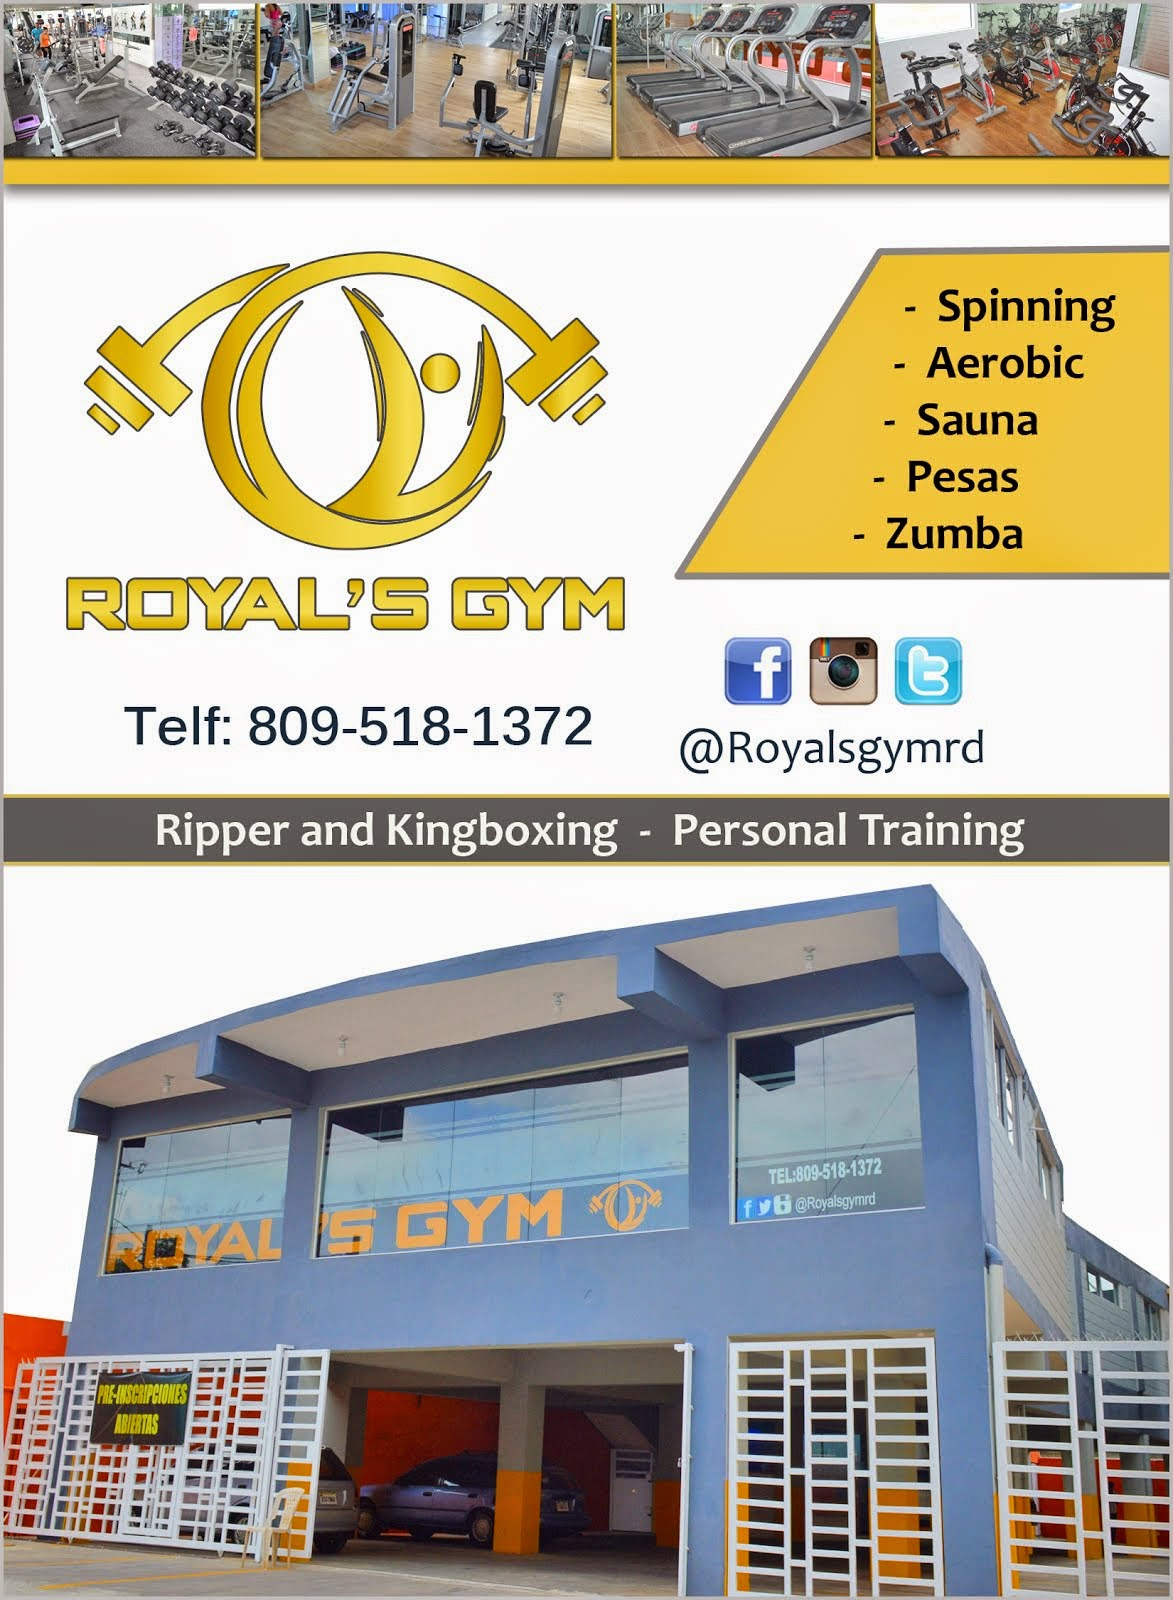 ROYAL'S GYM